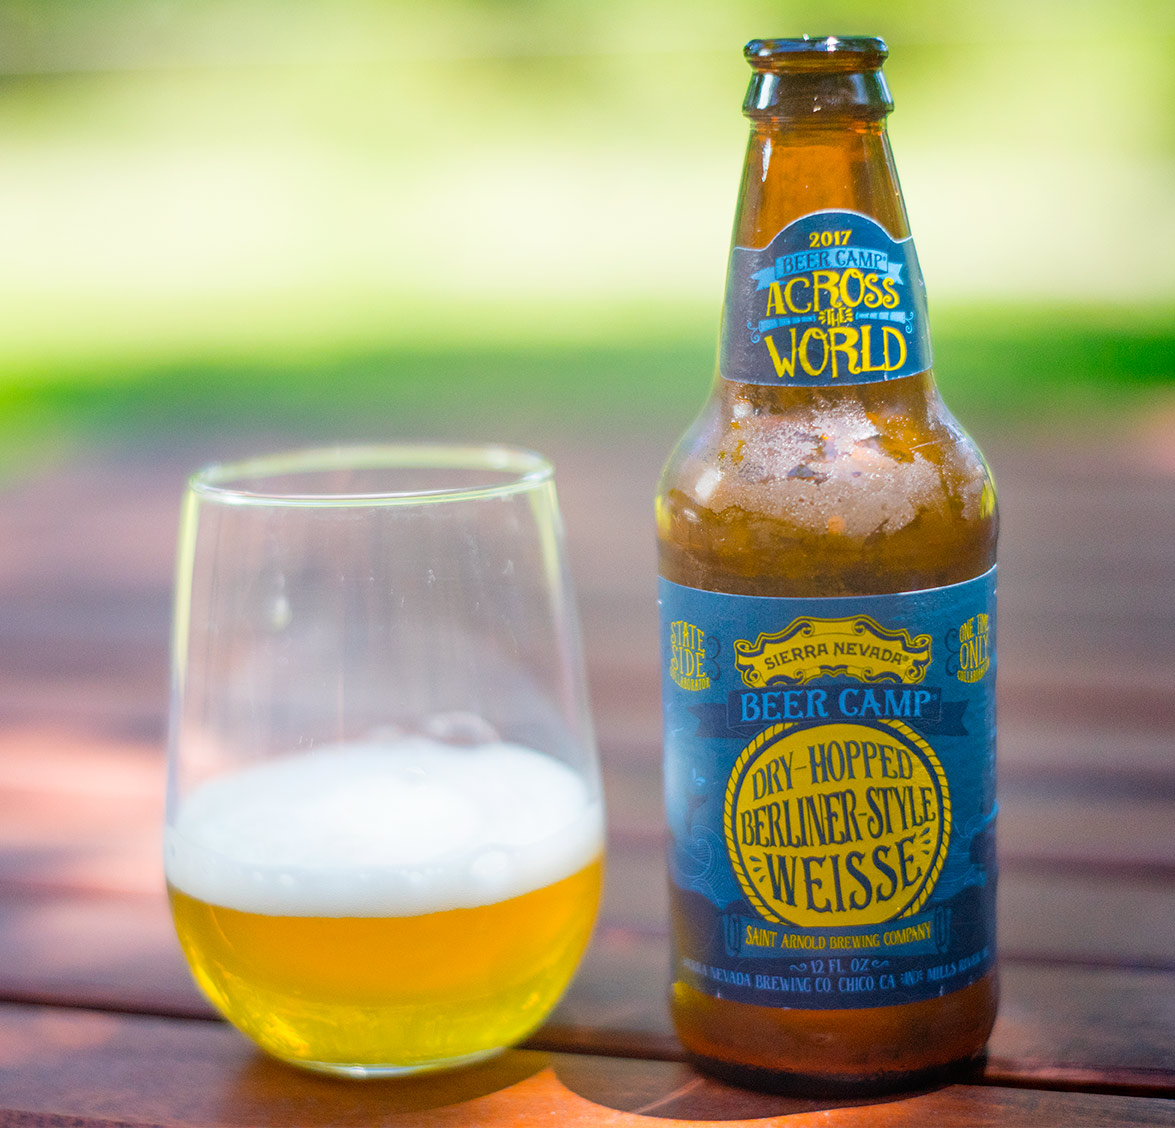 Sierra Nevada Beer Camp: Dry-hopped Berliner-Style Weisse